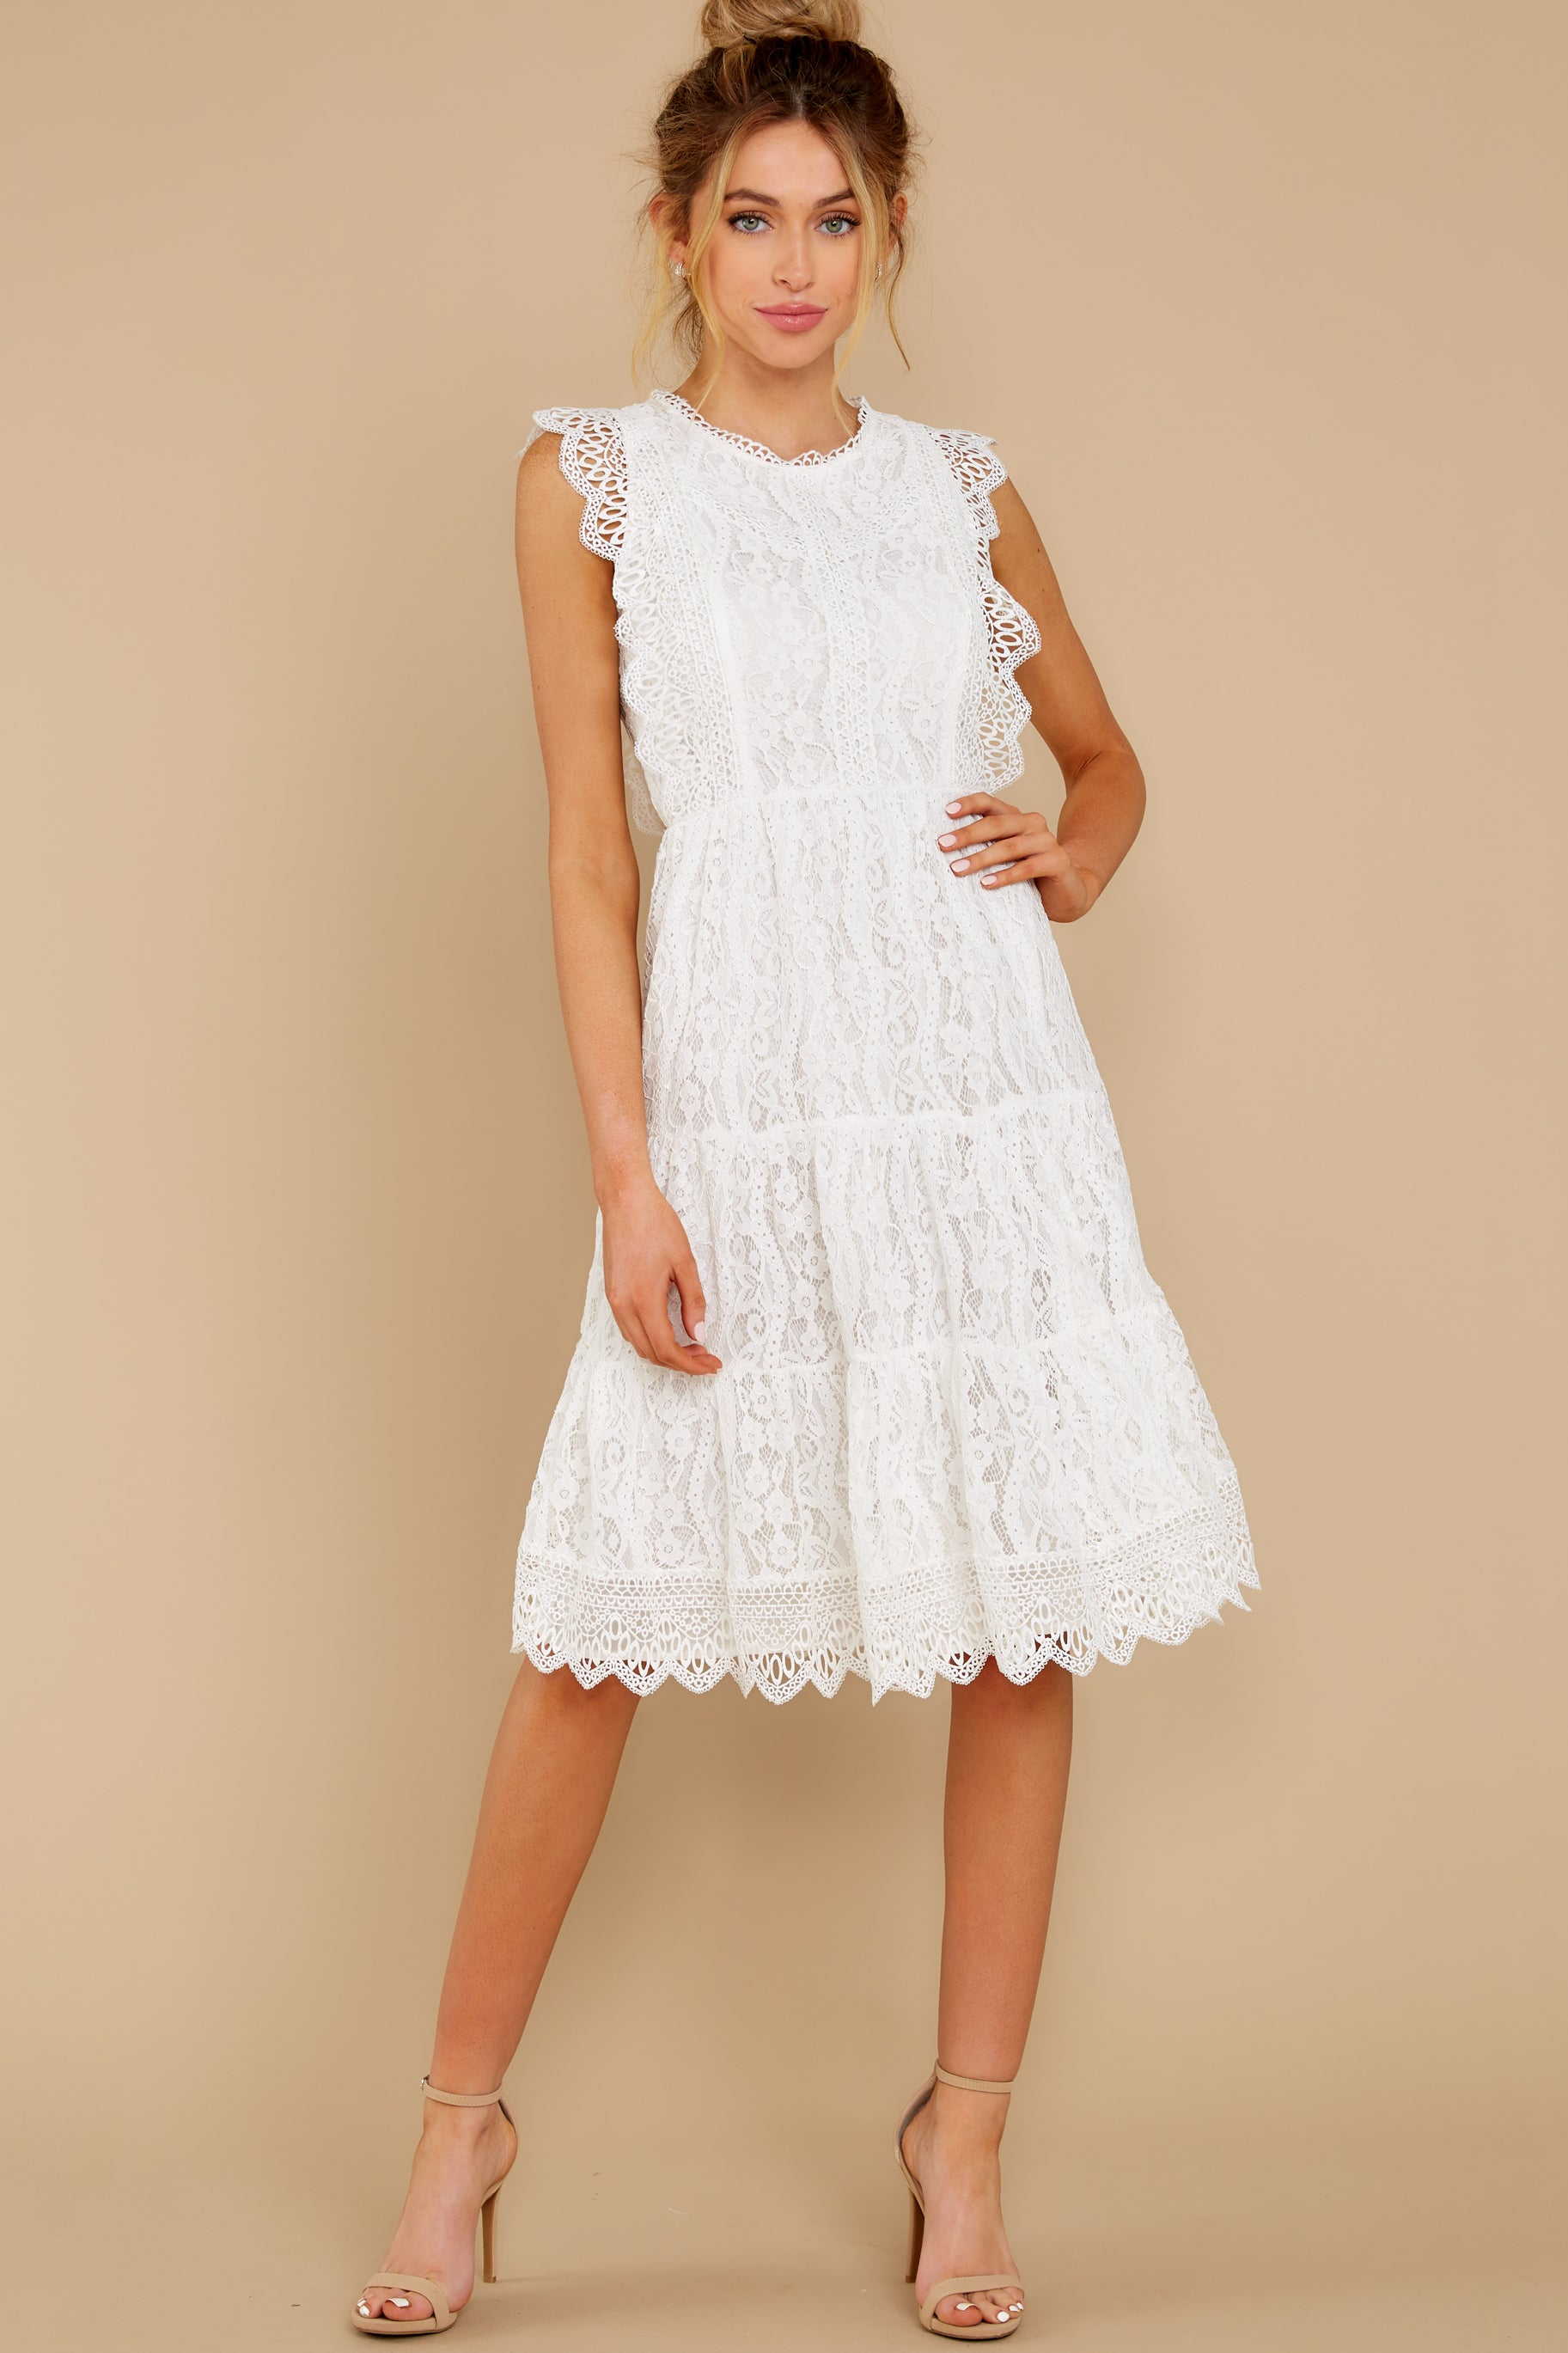 4 Simply Amazing White Lace Dress at reddress.com